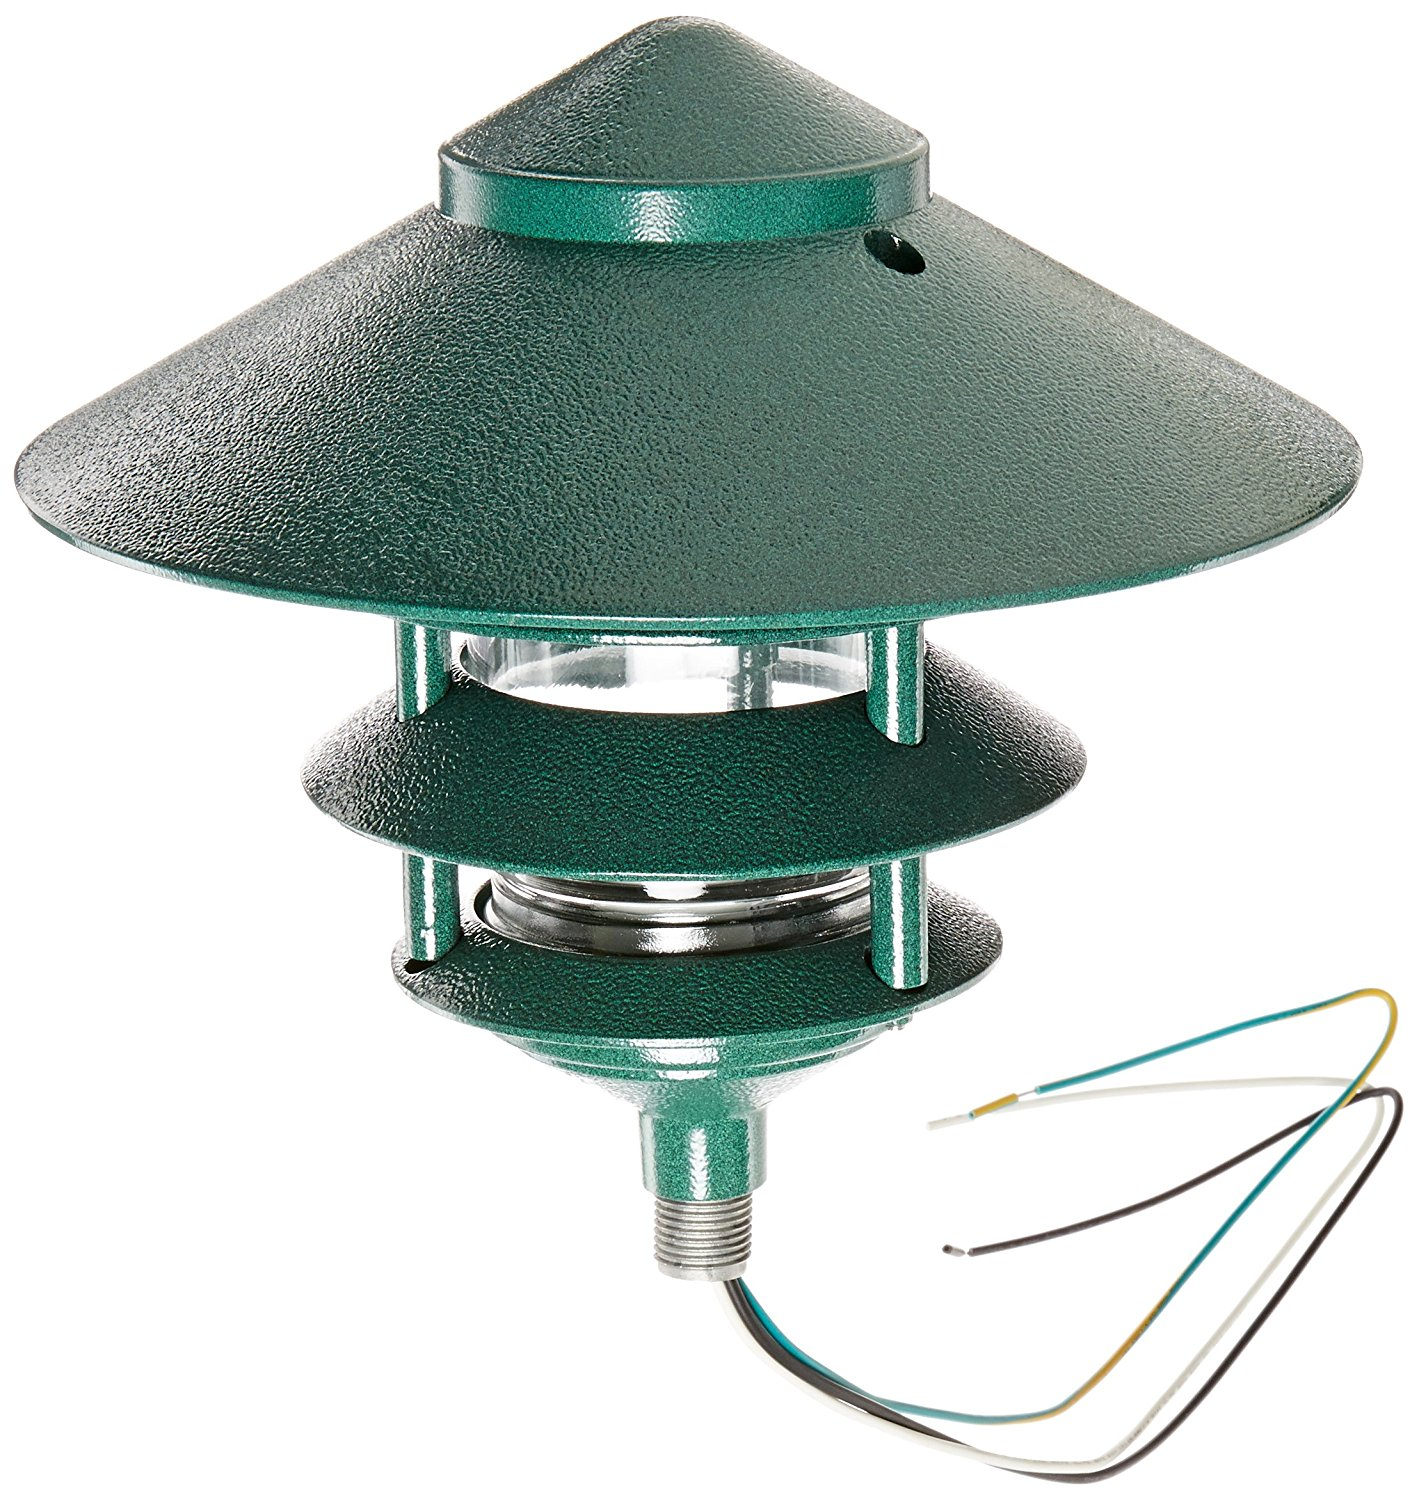 "RAB Lighting LL23VG Incandescent 4 Tier Lawn Light with 10"" Top, A-19 Type, 100W Power, 1650 Lumens, 120VAC, Verde Green"